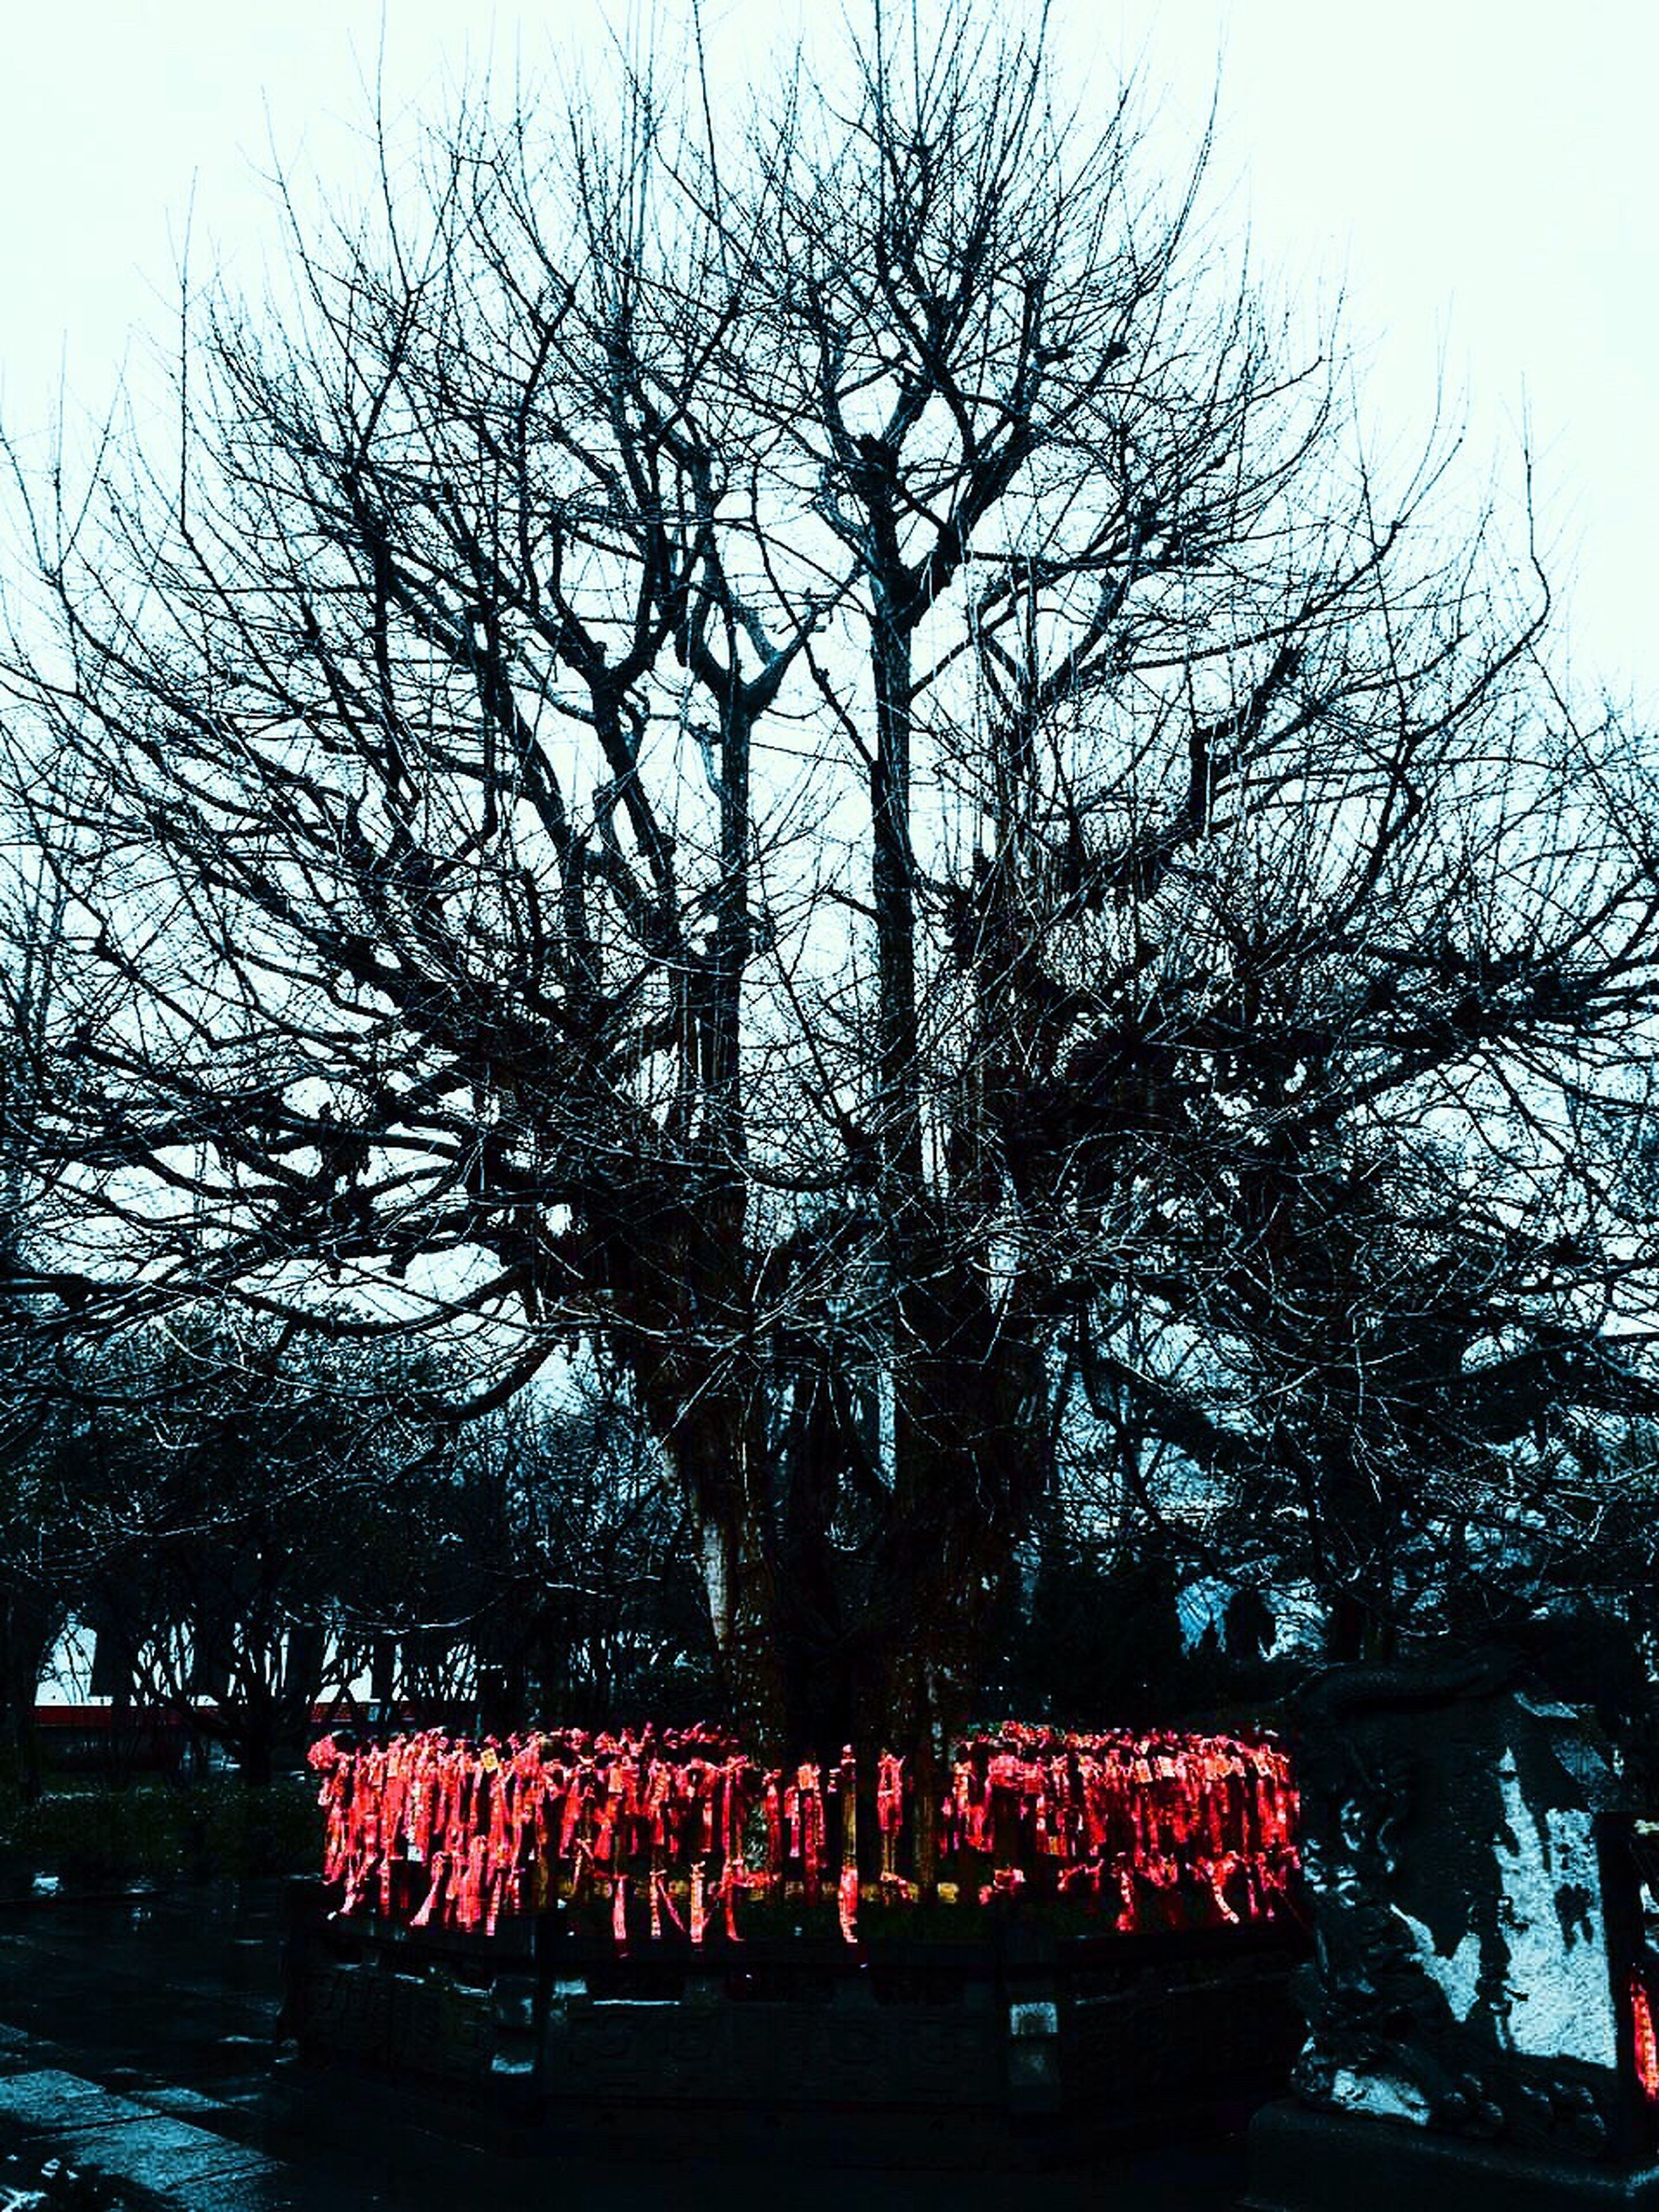 tree, bare tree, red, branch, low angle view, sky, clear sky, day, nature, outdoors, growth, built structure, no people, architecture, building exterior, text, tree trunk, western script, tranquility, park - man made space